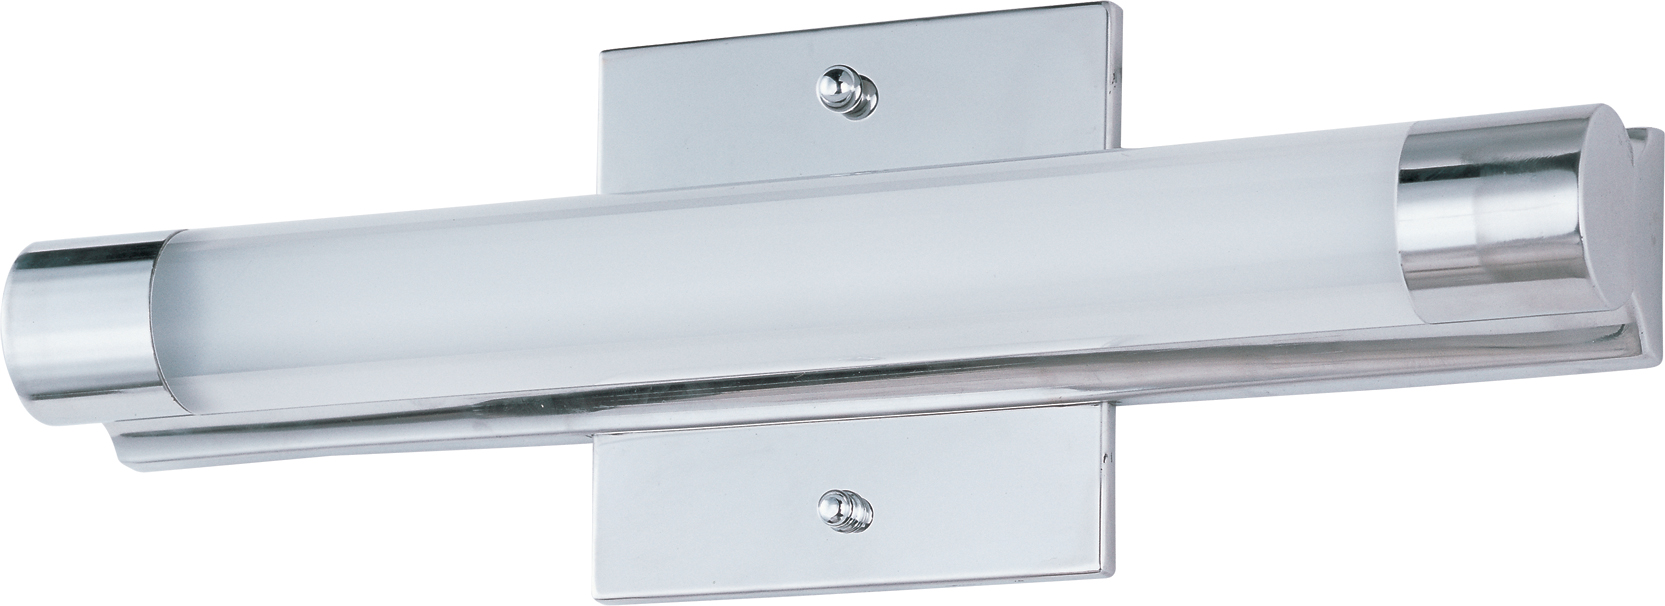 Exceptionnel Wand LED, Wand LED Bath Vanity ...